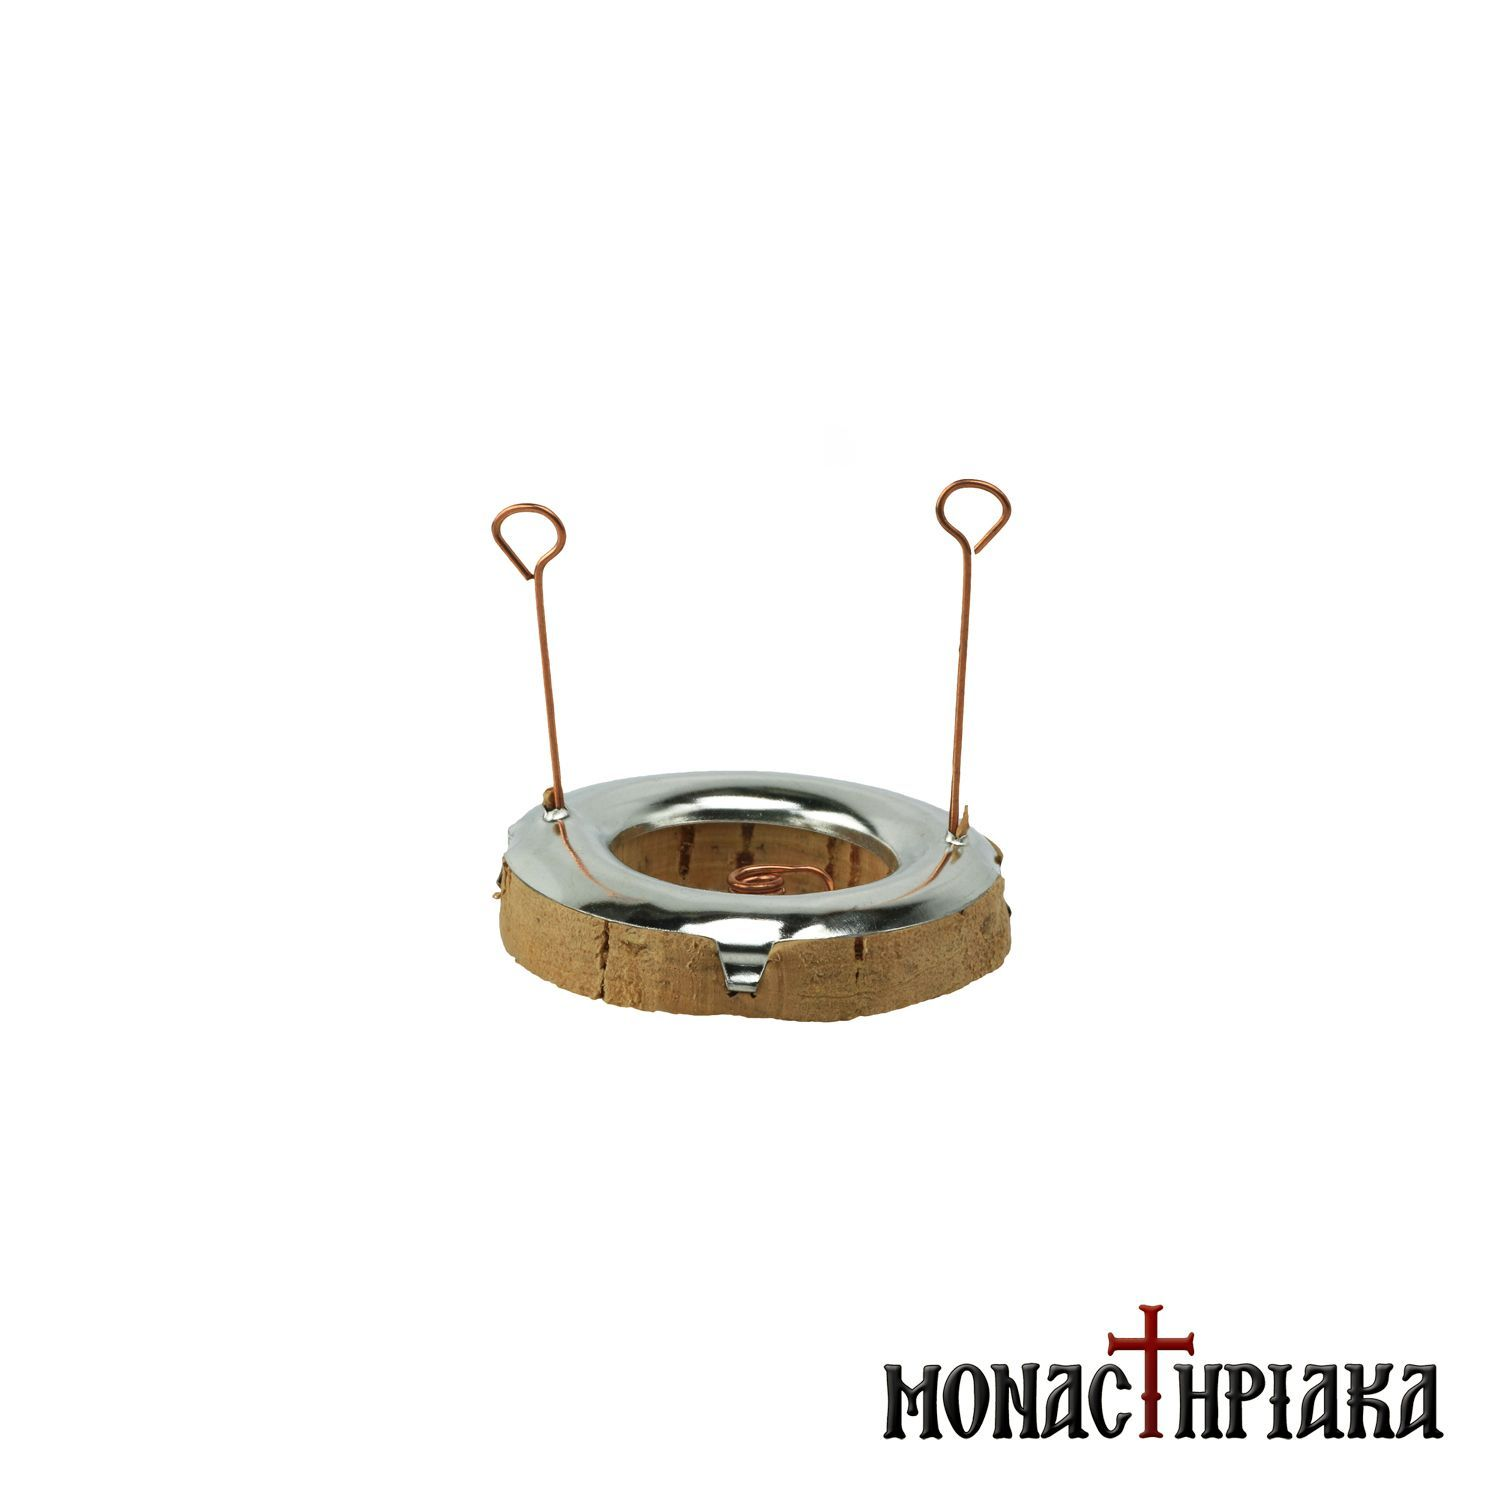 Picture of: Mount Athos Wick Float For Vigil Lamp Cantilithra